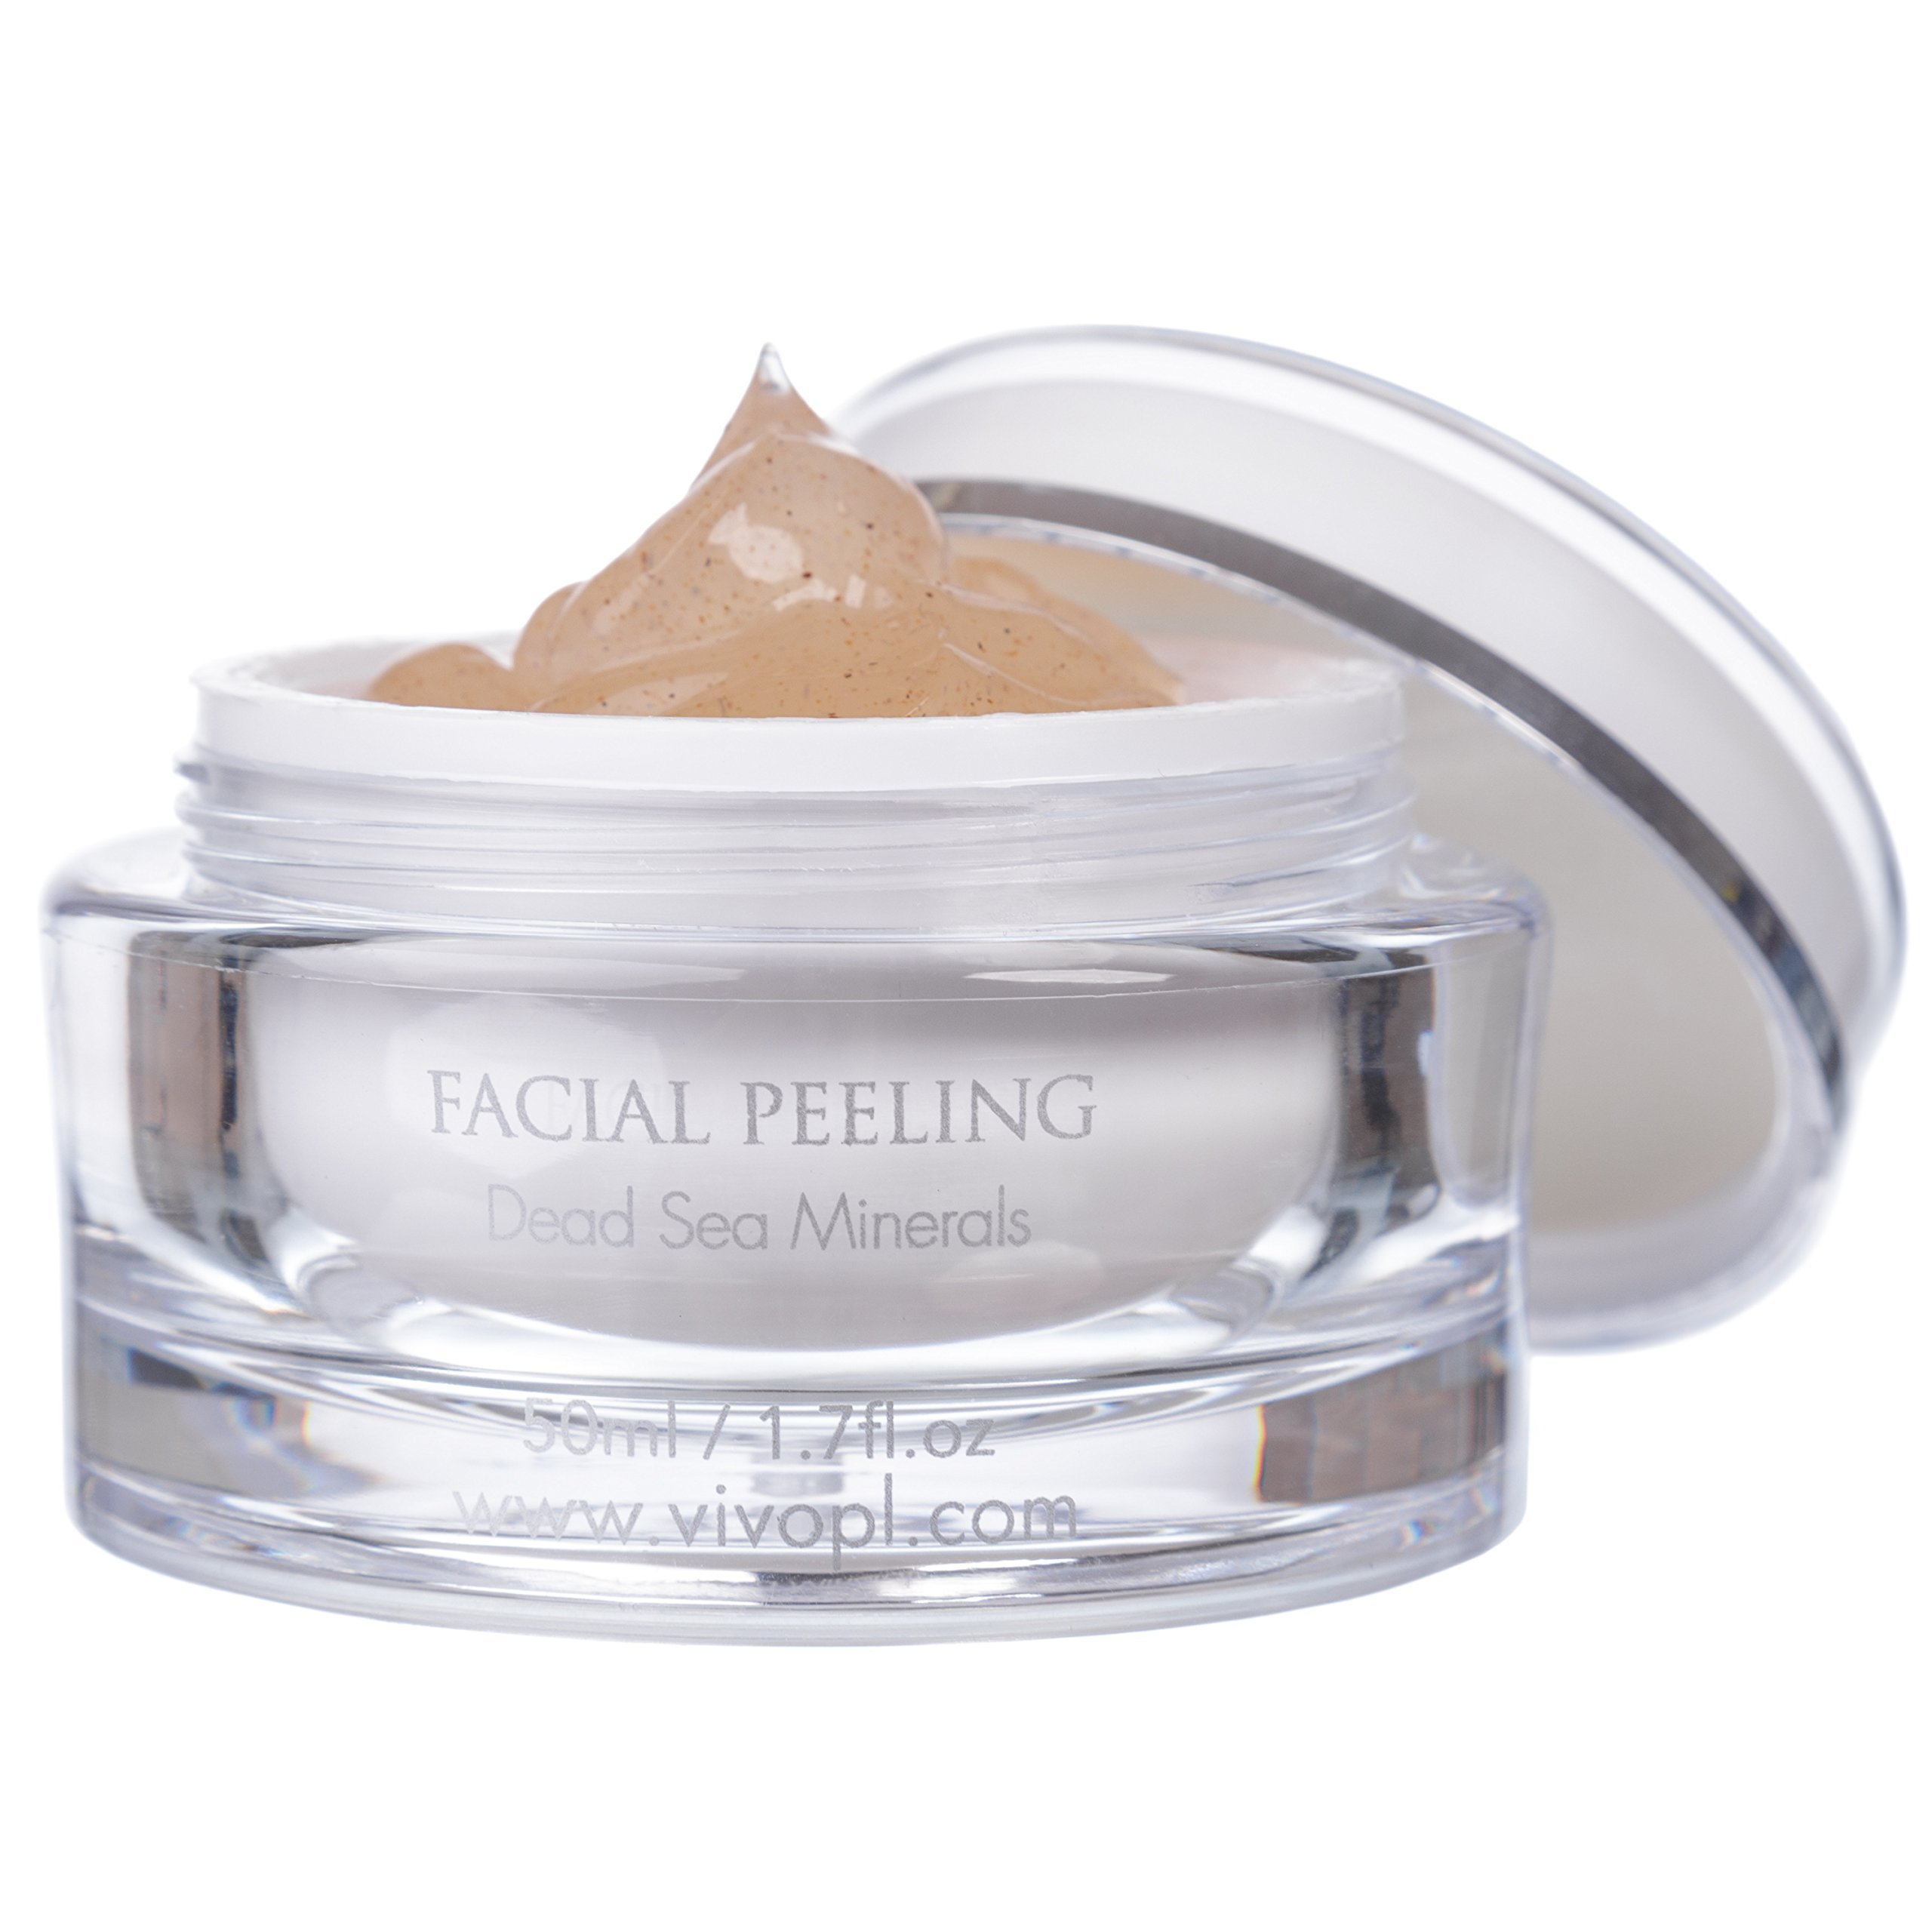 Vivo Per Lei Facial Peeling Gel | Contains Dead Sea Minerals and Nut Shell Powder | Gentle Face Exfoliator Scrub and Blackhead Remover | Peel Your Skin to a Fresher You | 1.69 Fl. Oz.